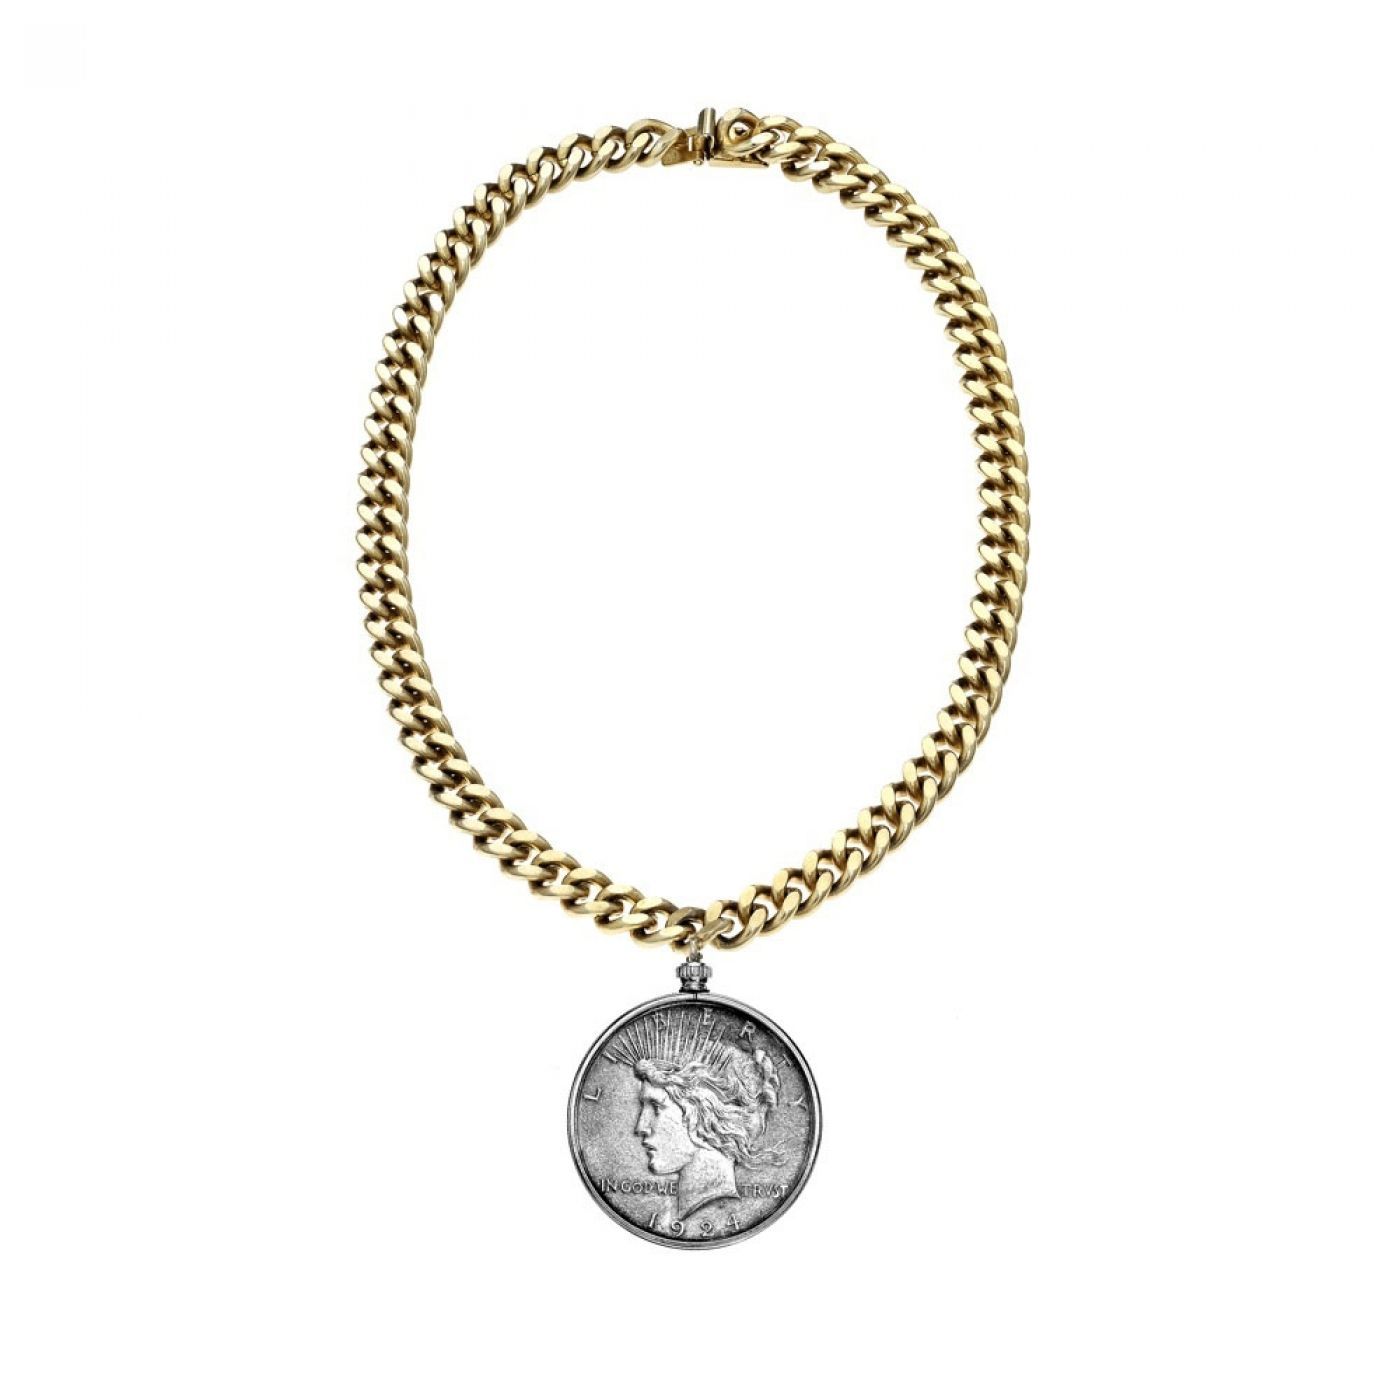 Liberty Dollar Necklace with Matte Gold Chain from JANIS SAVITT